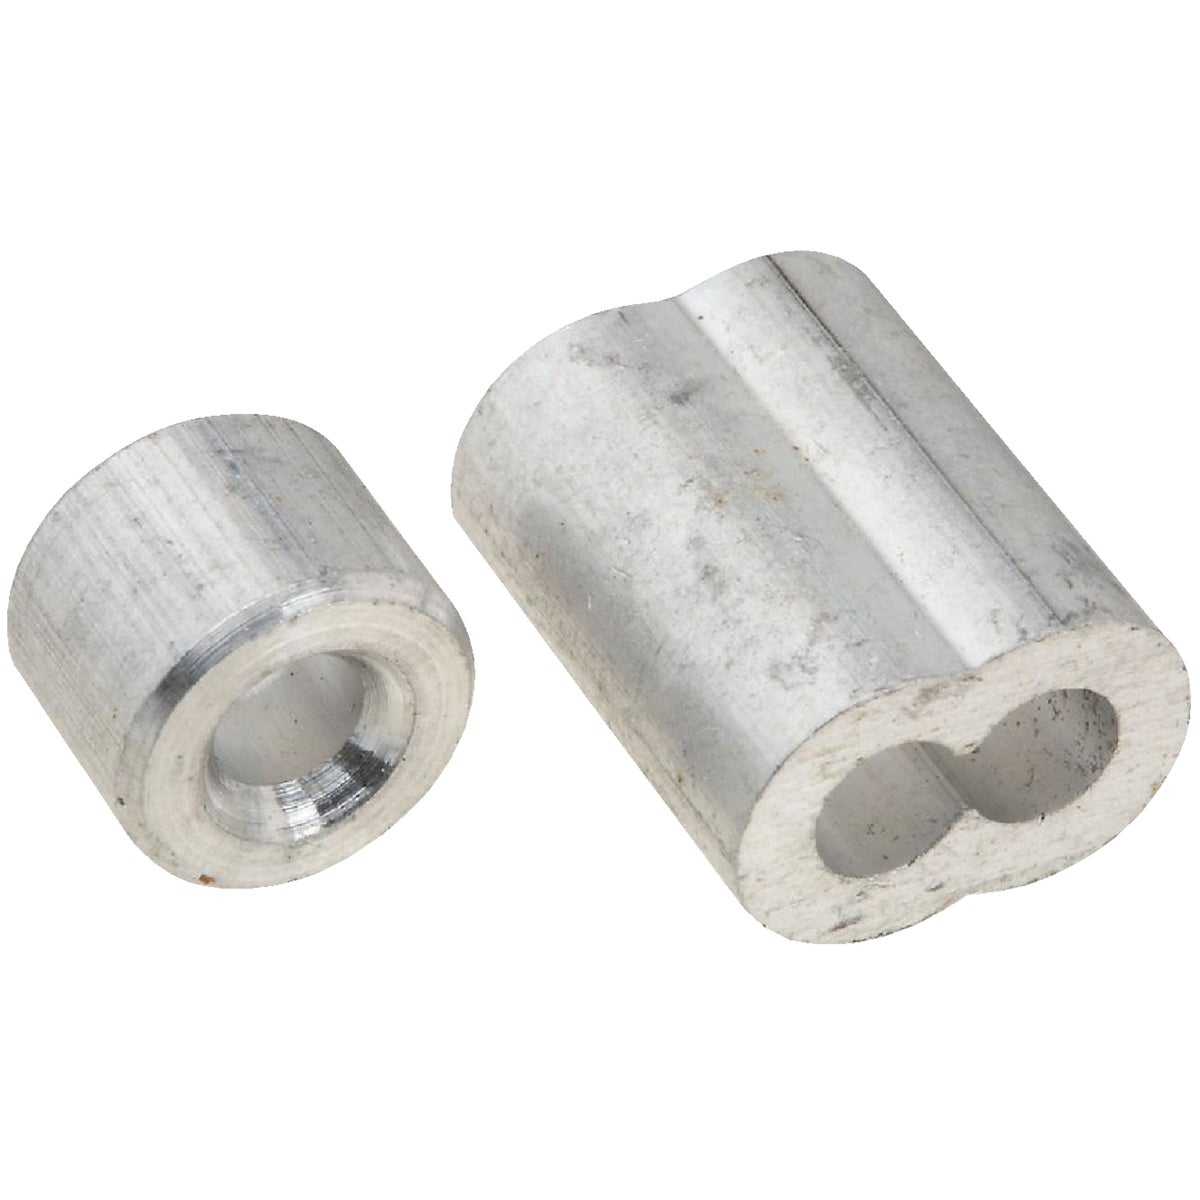 "5/32"" FERRULES & STOPS - N283895 by National Mfg Co"